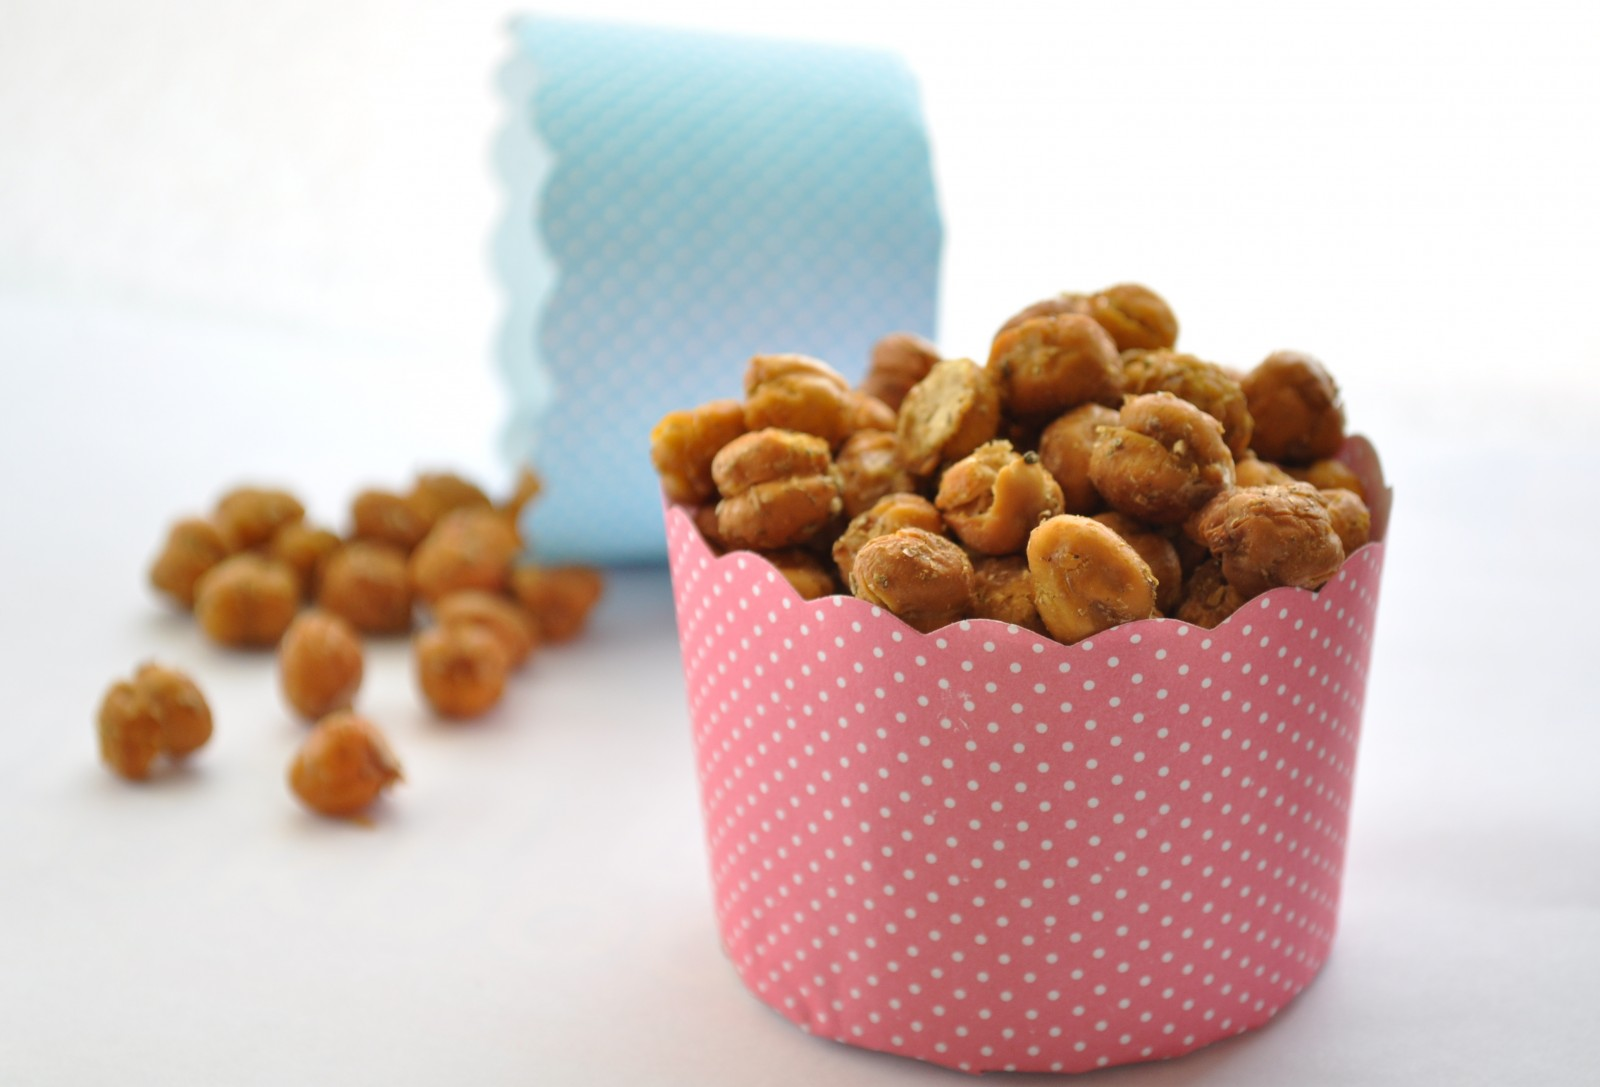 Crispy baked chickpea nibbles